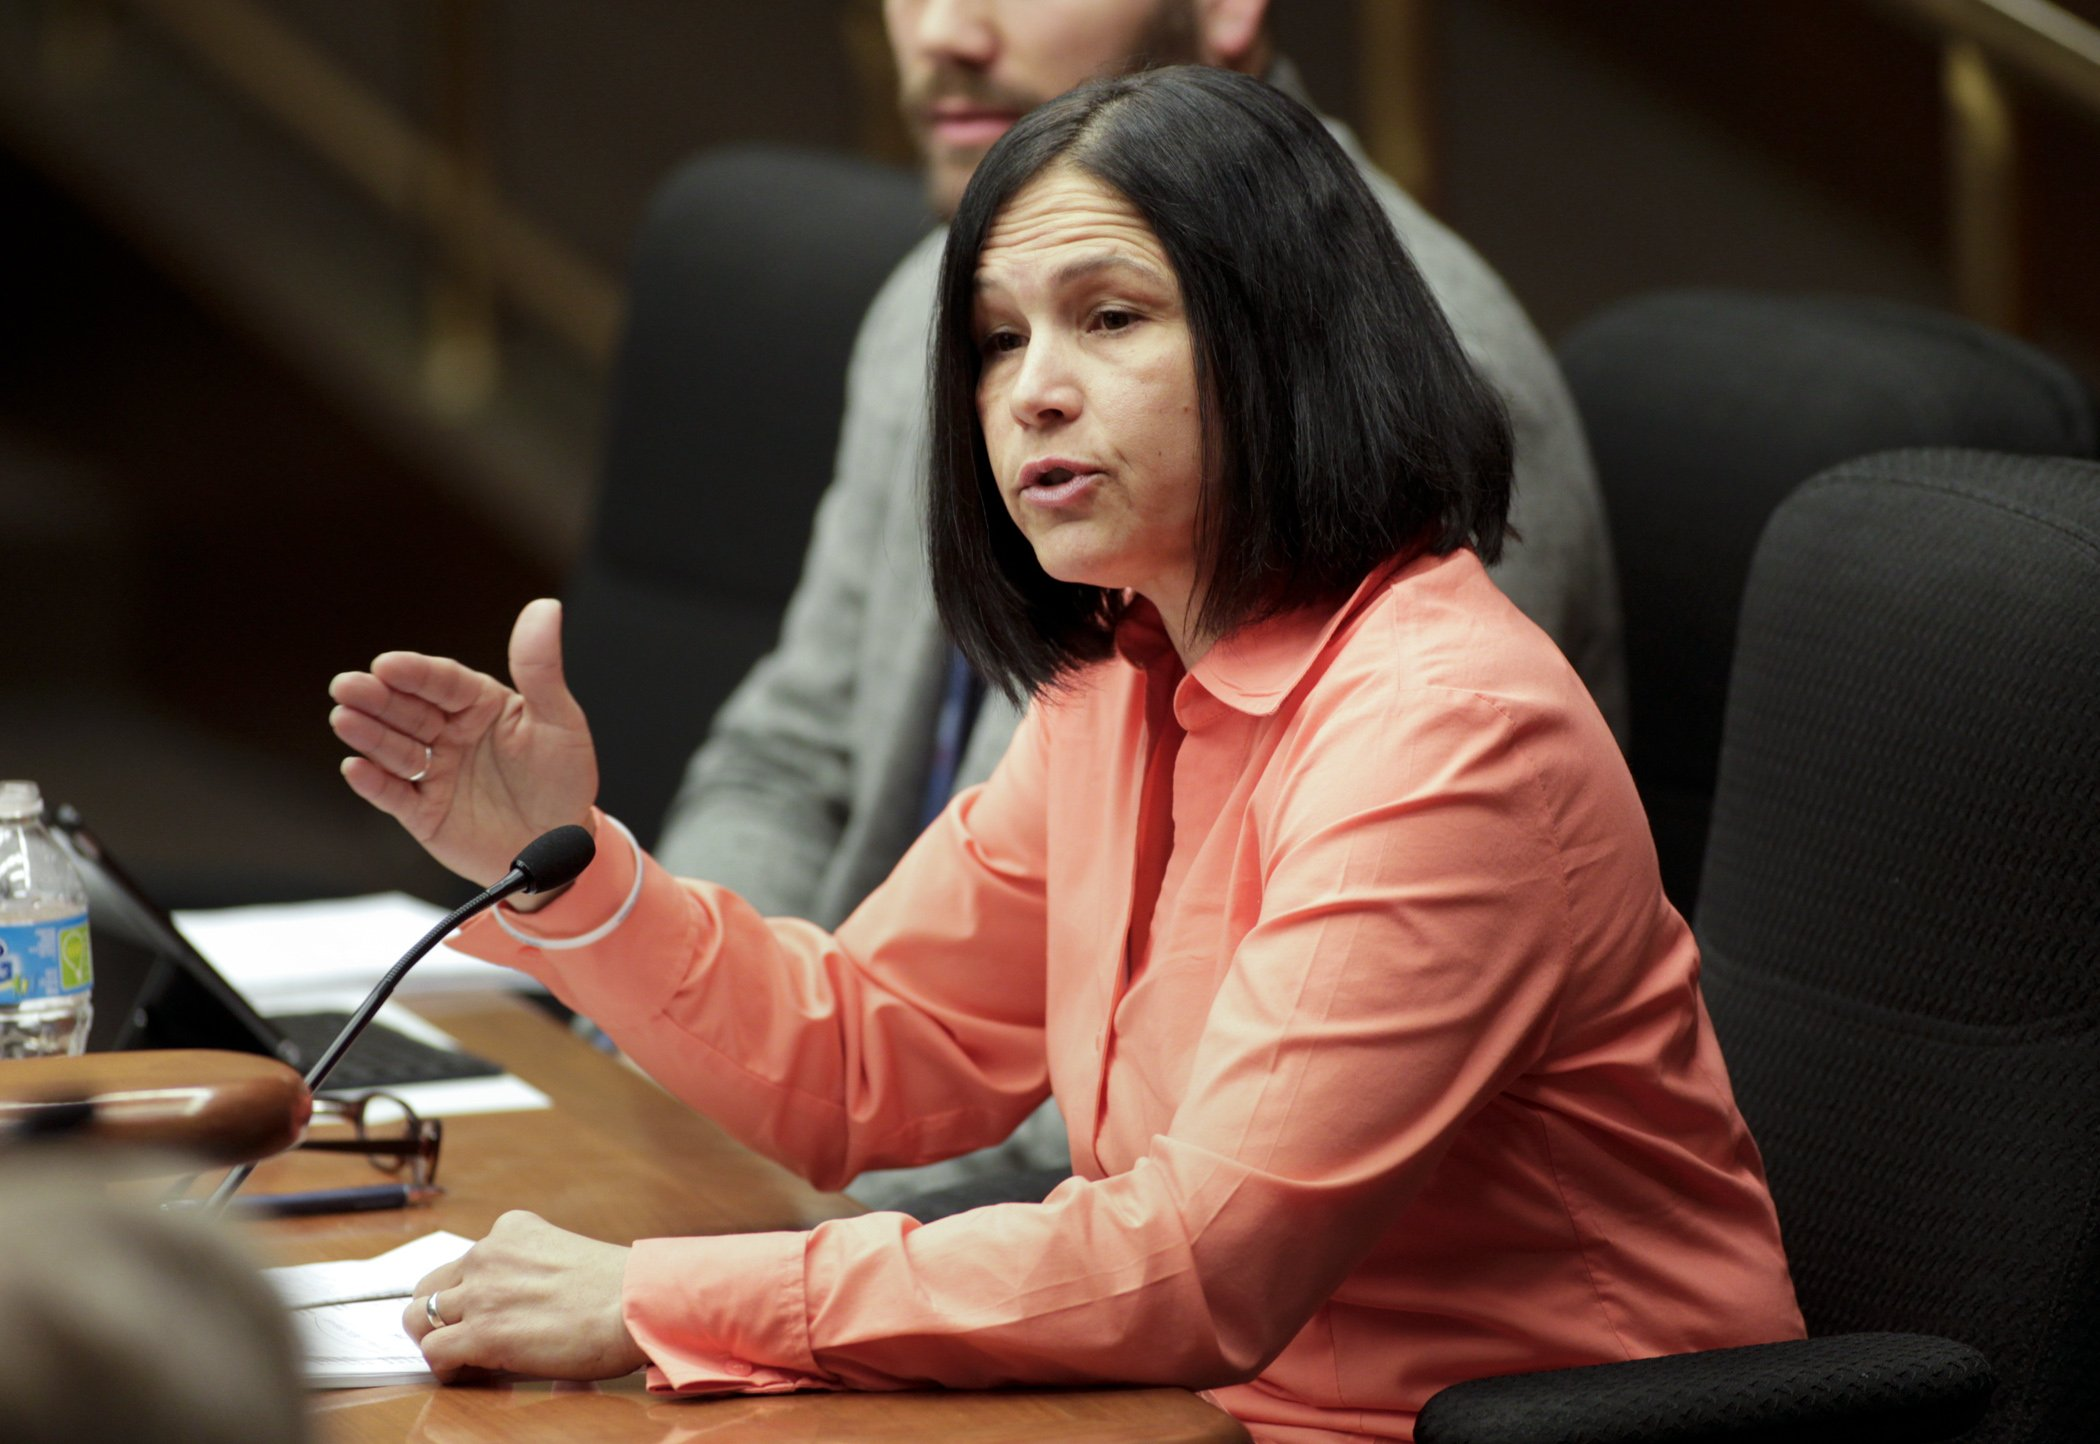 Education Commissioner Brenda Cassellius explains provisions of HF1591, a bill that contains the department's policy proposals, during March 12 testimony before the House Education Innovation Policy Committee. Photo by Paul Battaglia